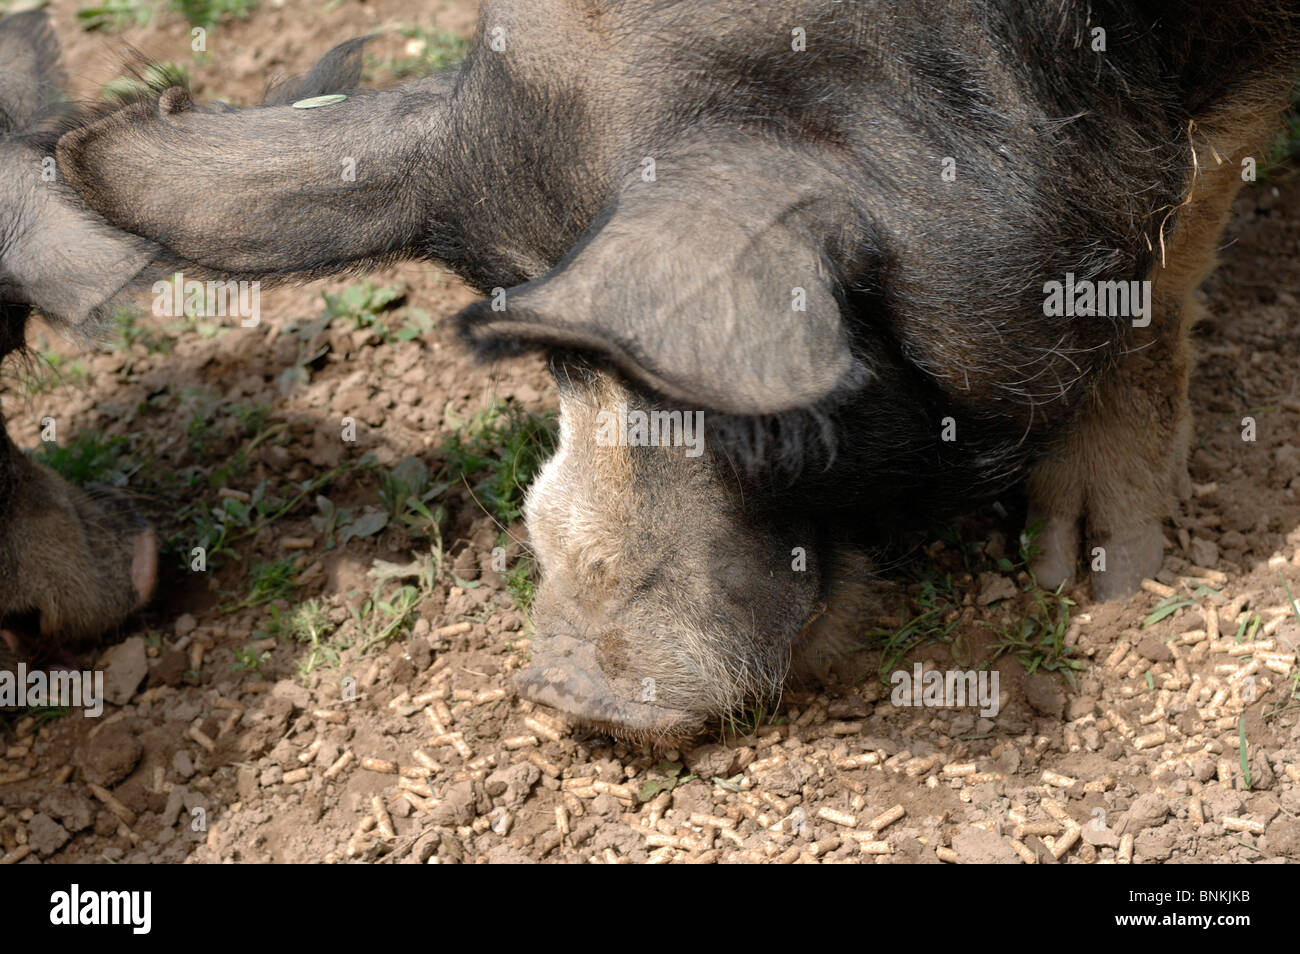 Berkshire boar feeding on nuts in domestic setting - Stock Image